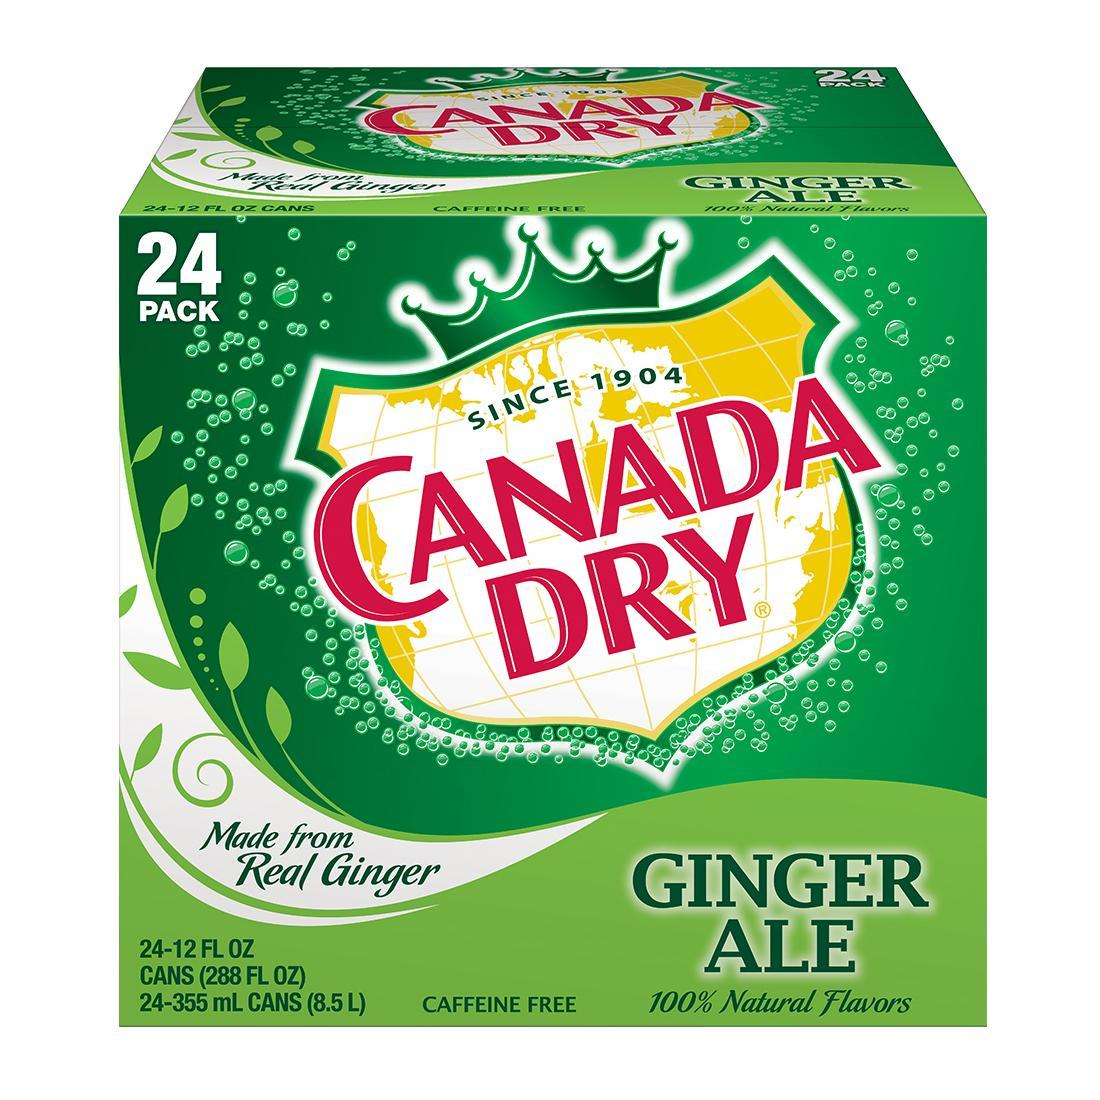 gre>Canada dry - Ginger Ale - 24 Pack - cans